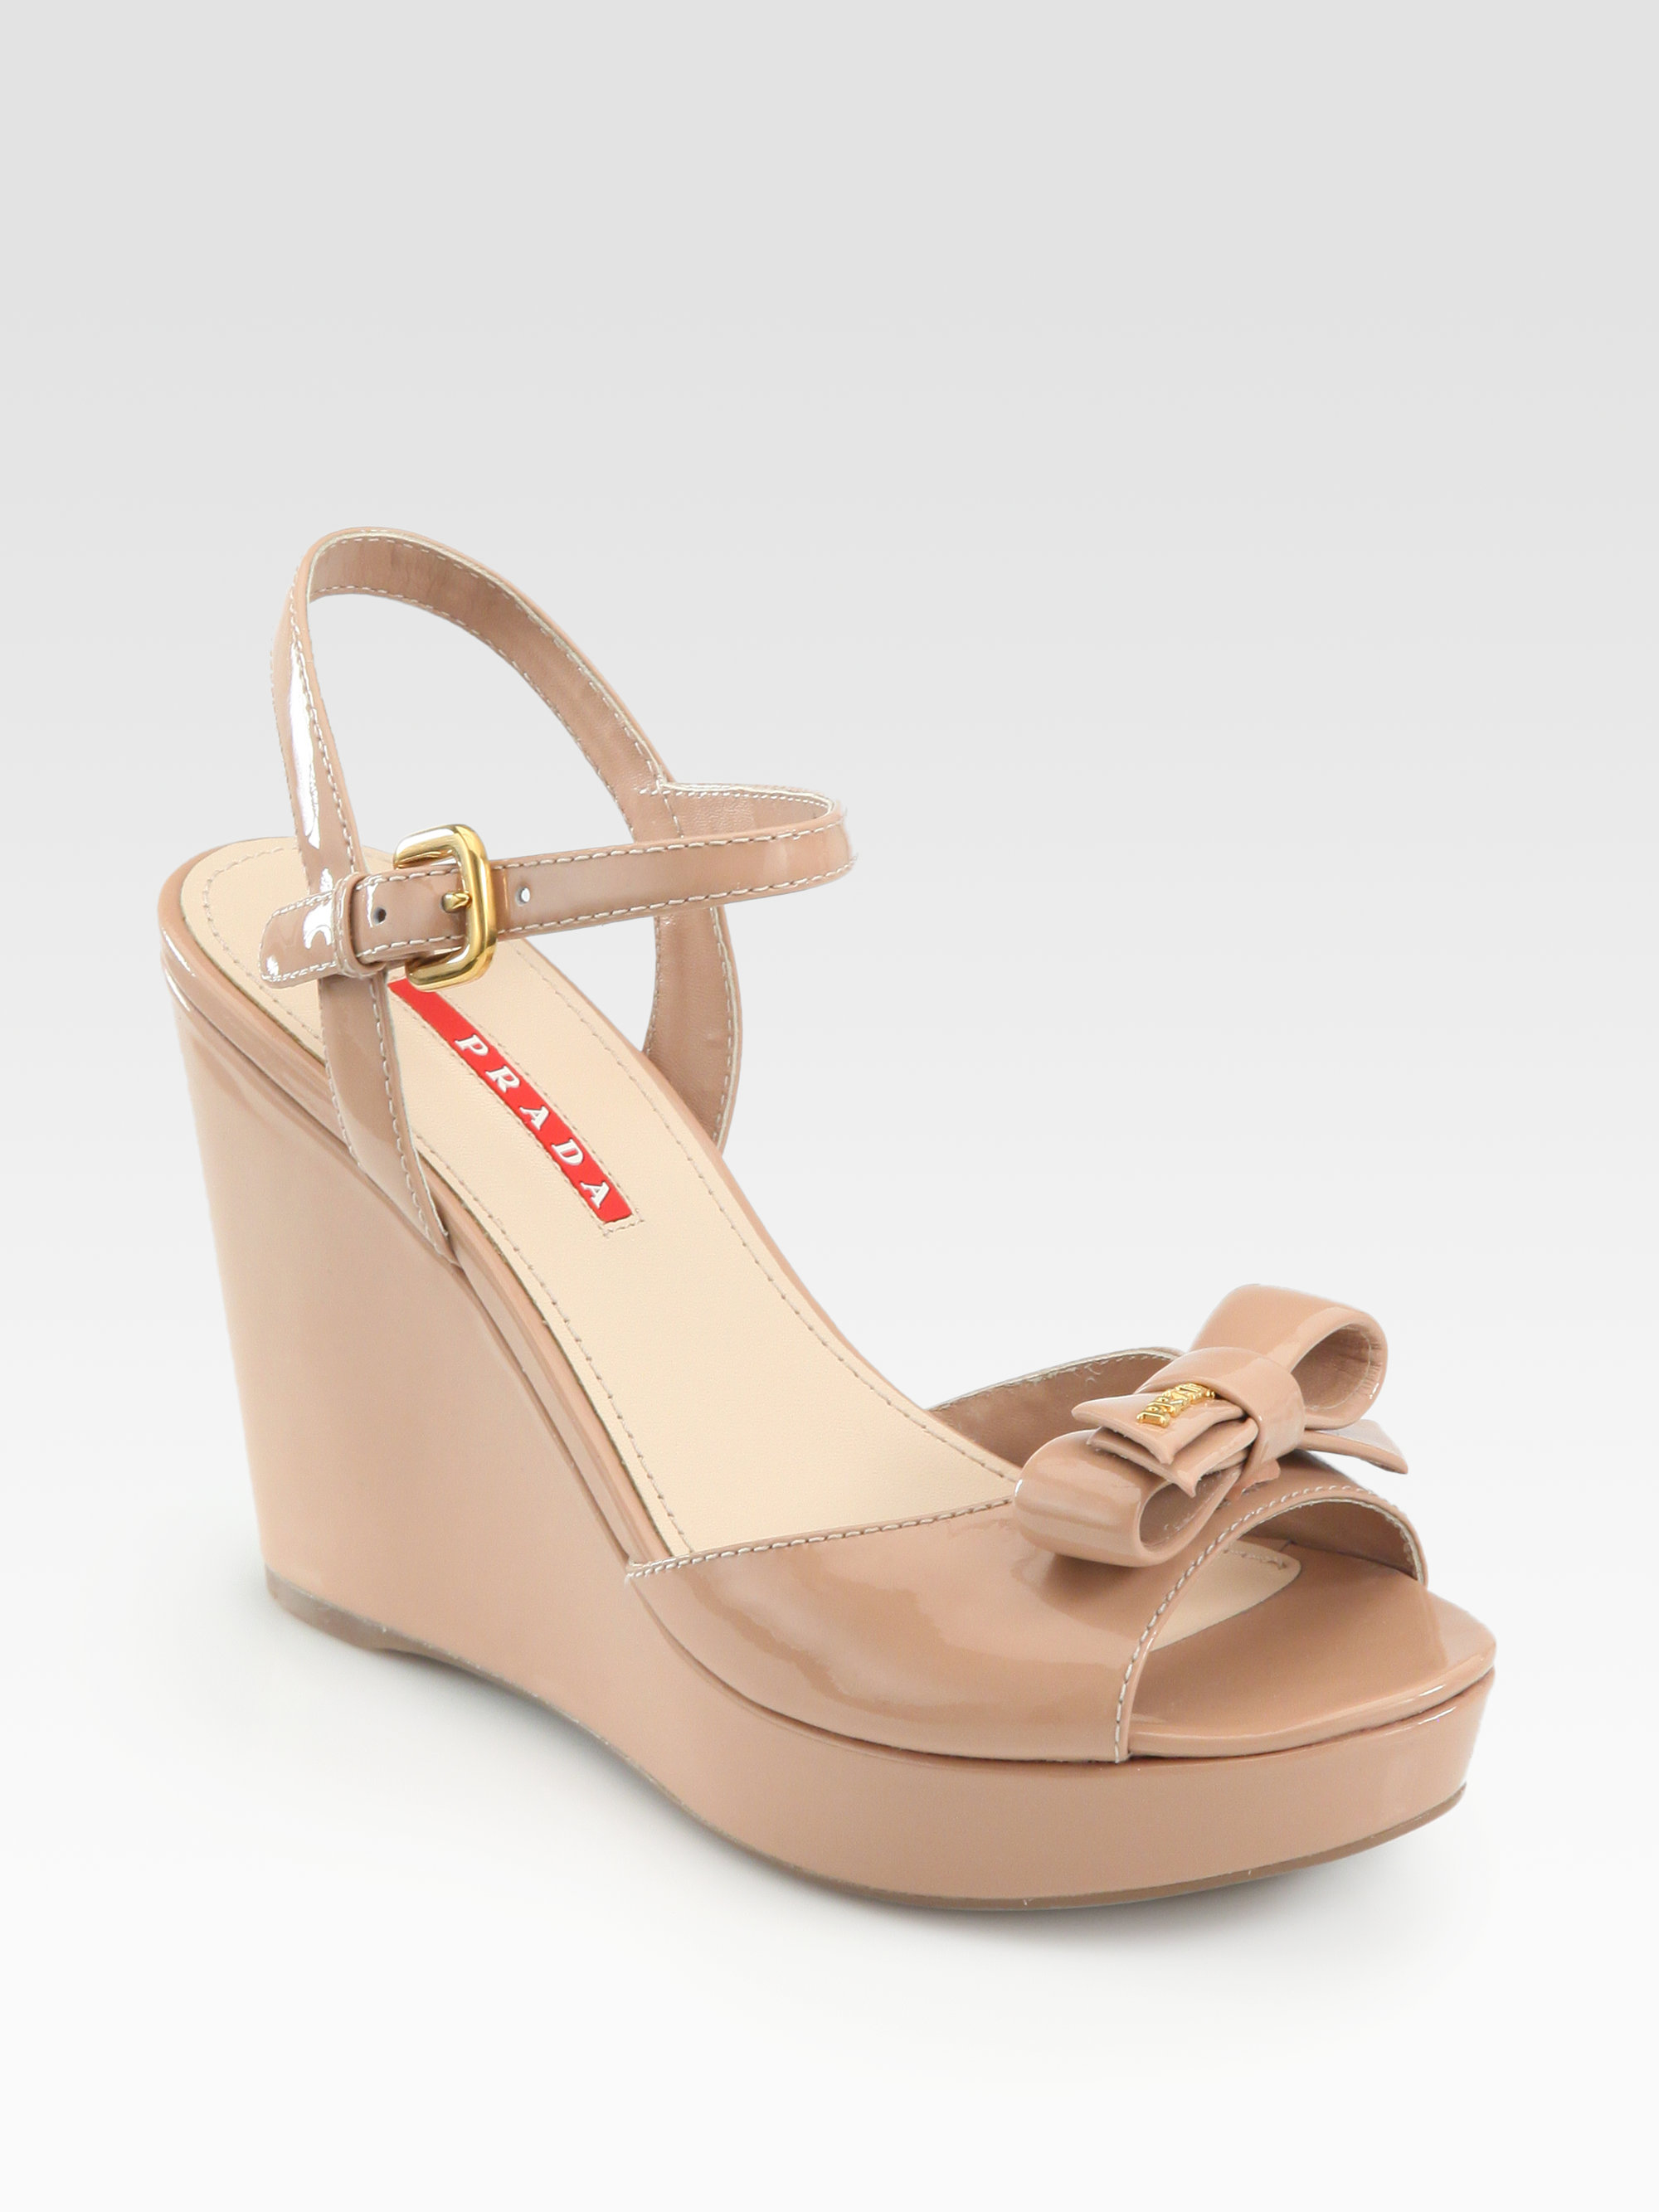 ca91290c866 Lyst - Prada Patent Leather Bow Wedge Sandals in Natural